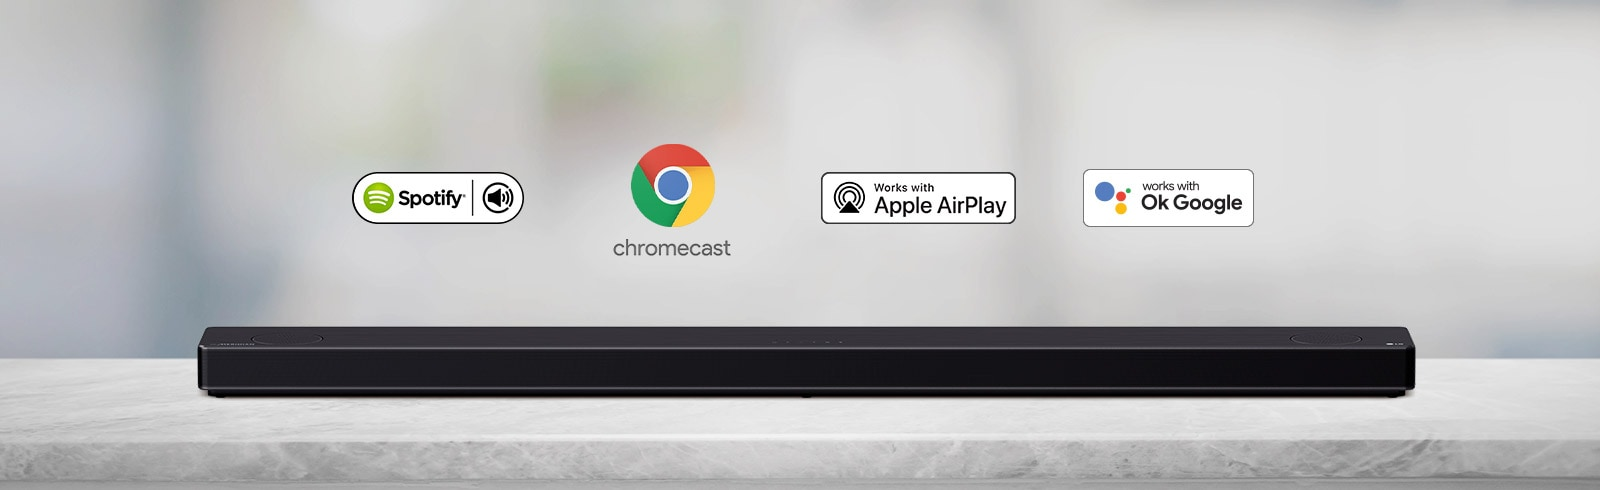 There is a soundbar placed on a gray shelf and there are AI platform logos, in order of Spotify, Alexa, Chromecast, Apple Airplay, and OK Google from left to right.